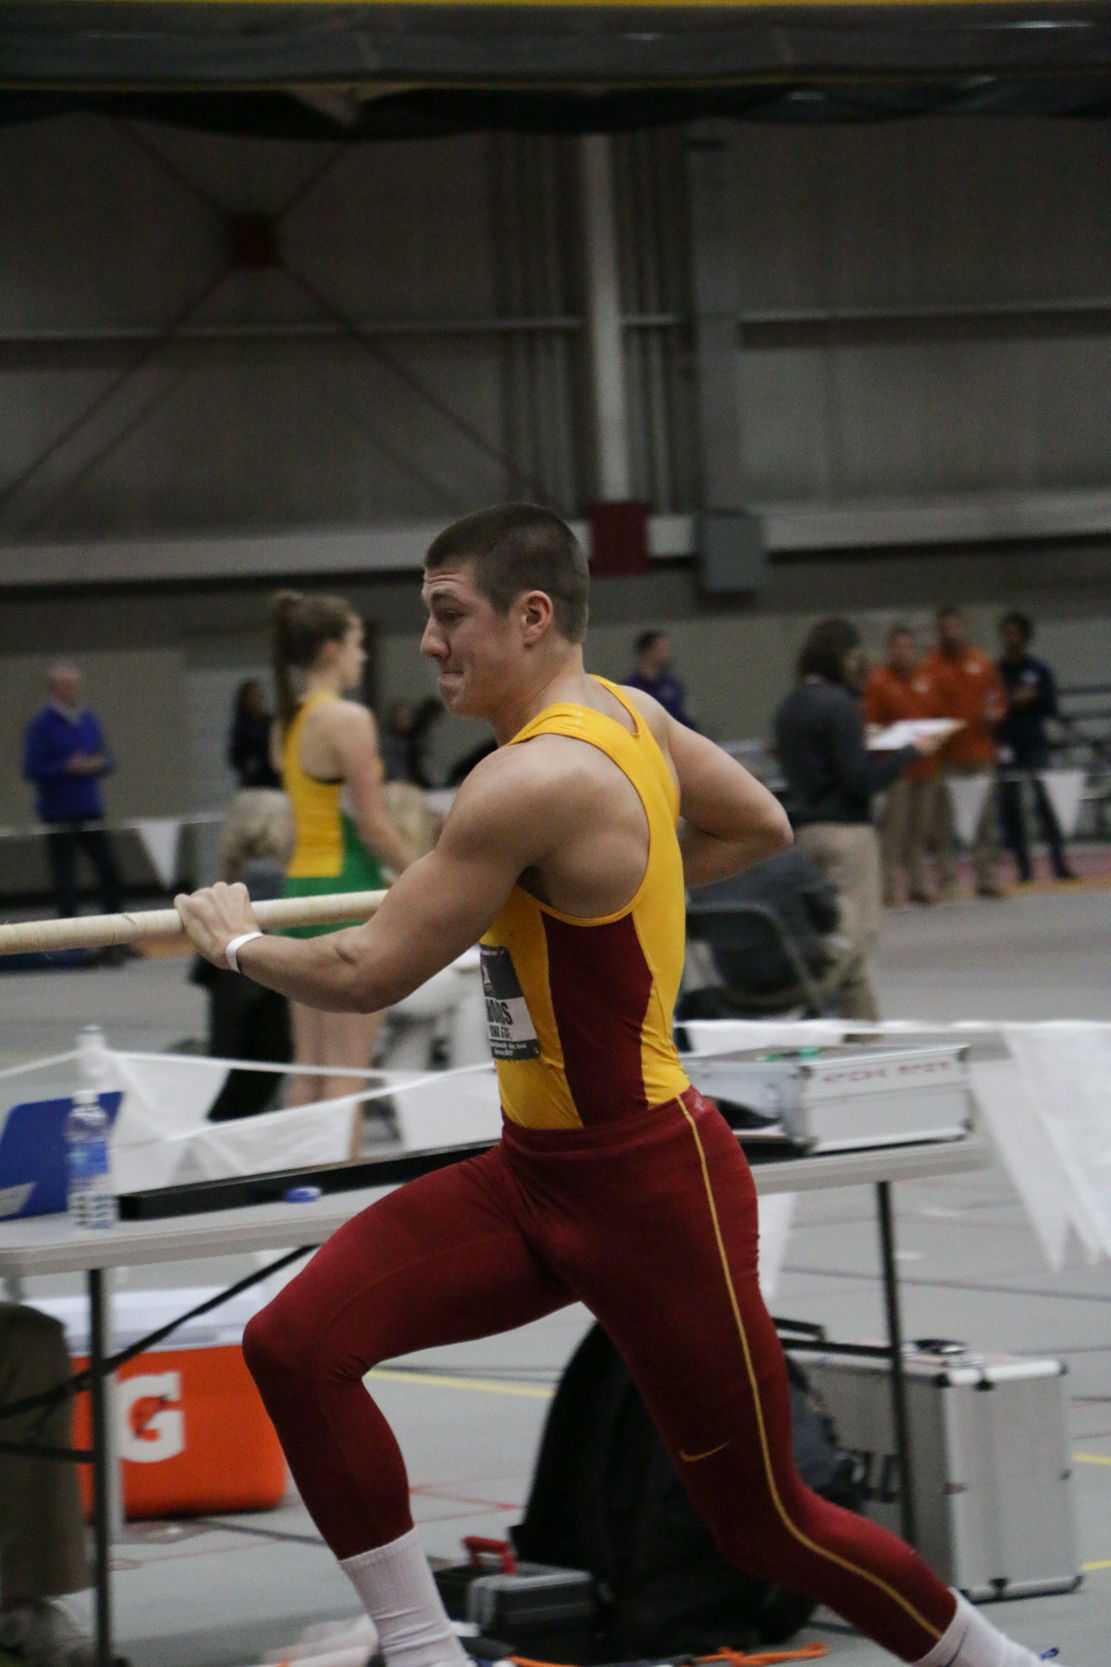 big 12 indoor track day two-4.jpg